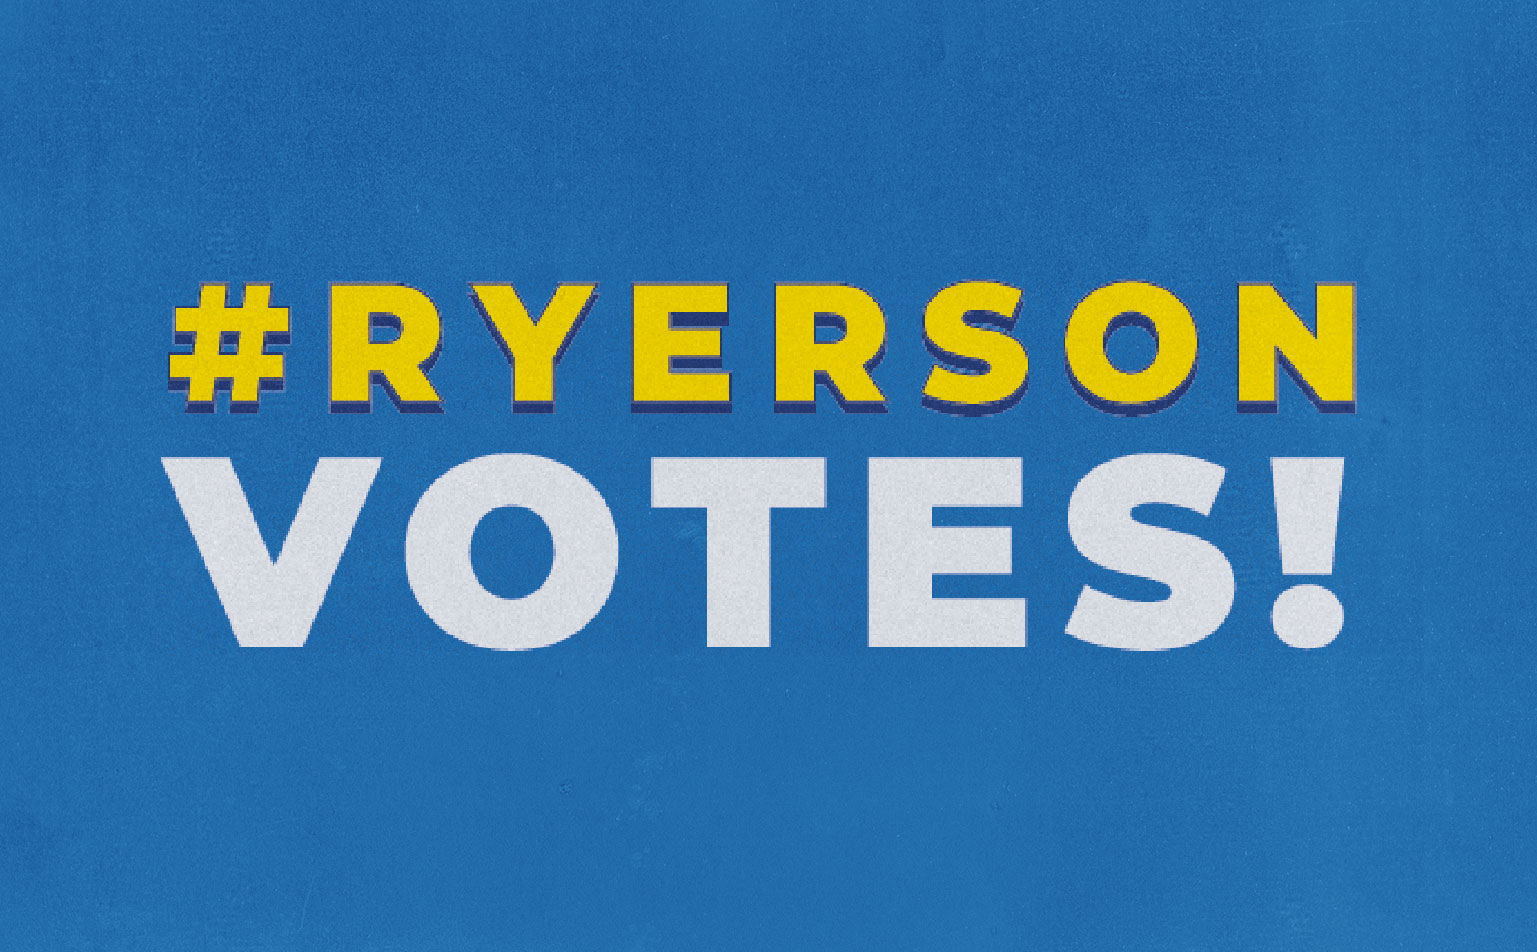 RyersonVotes Aims To Increase Youth Voter Engagement On Campus